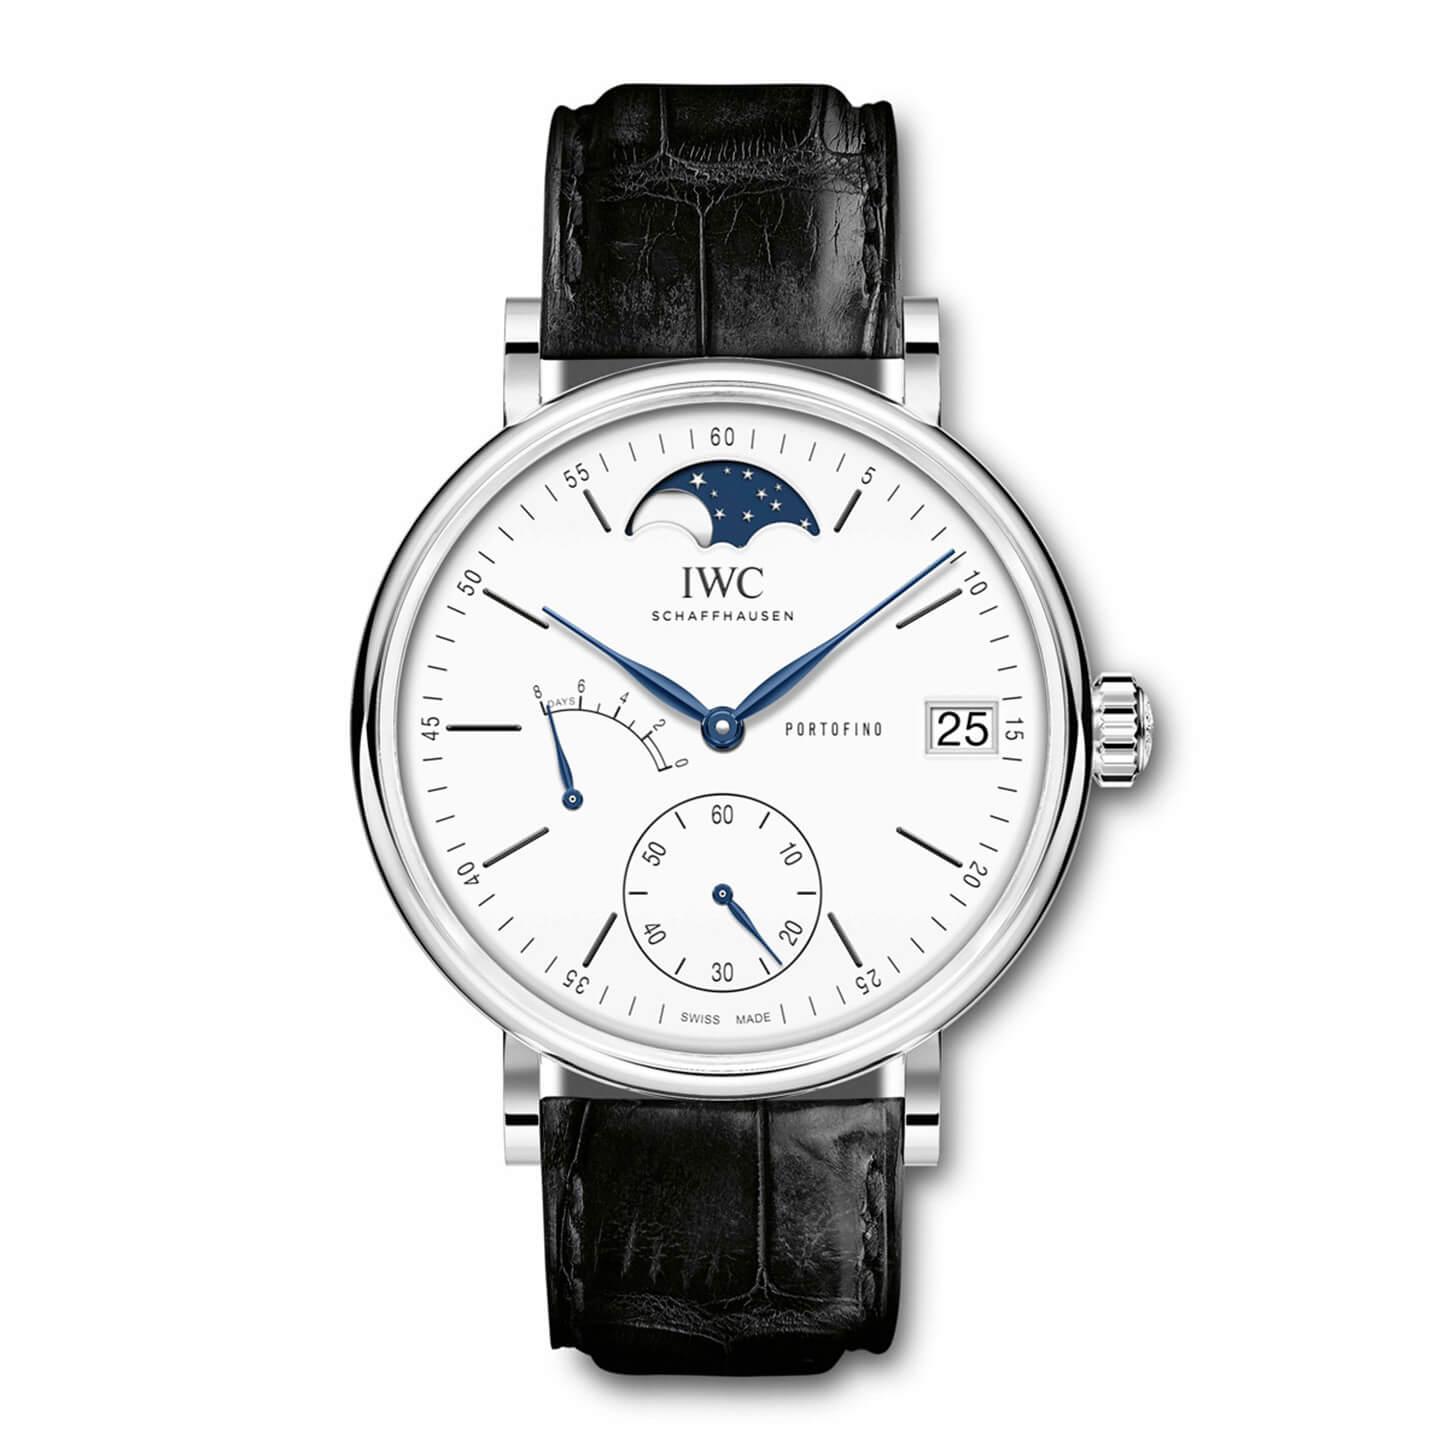 IWC Portofino Hand-Wound Moon Phase Edition 150 Years IW516406